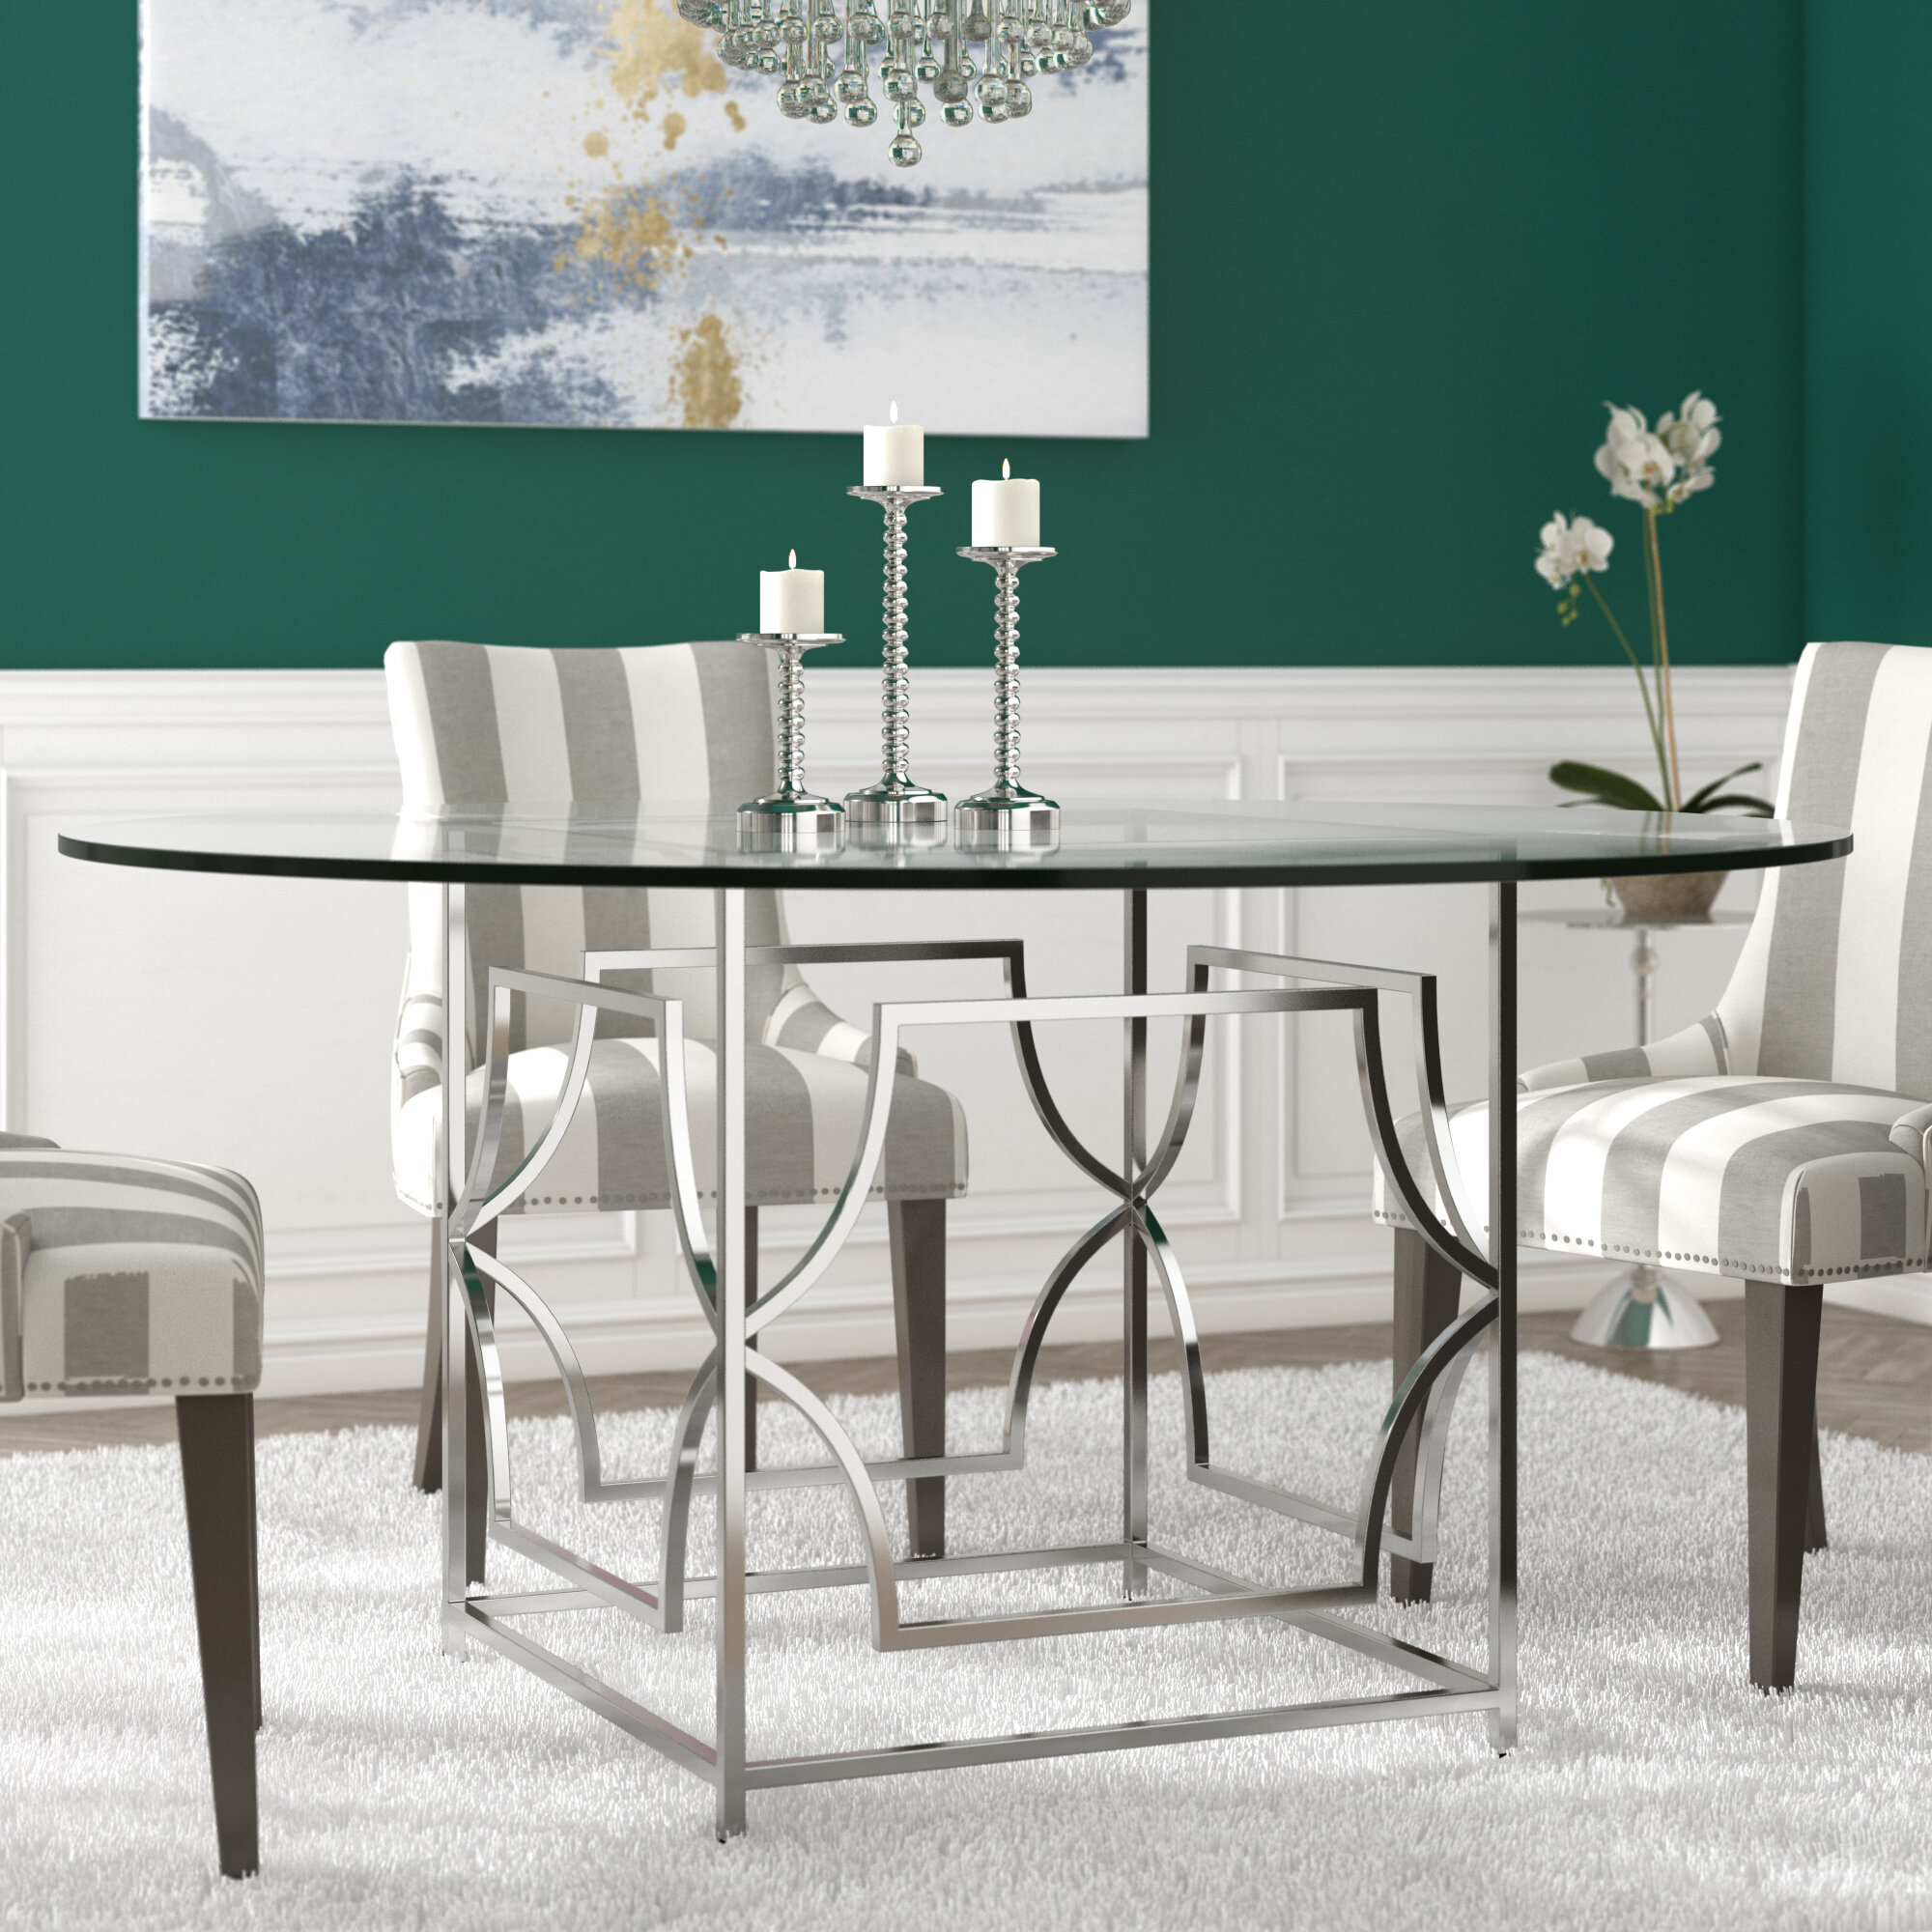 Picture of: 6 Seat Glass Kitchen Dining Tables You Ll Love In 2020 Wayfair